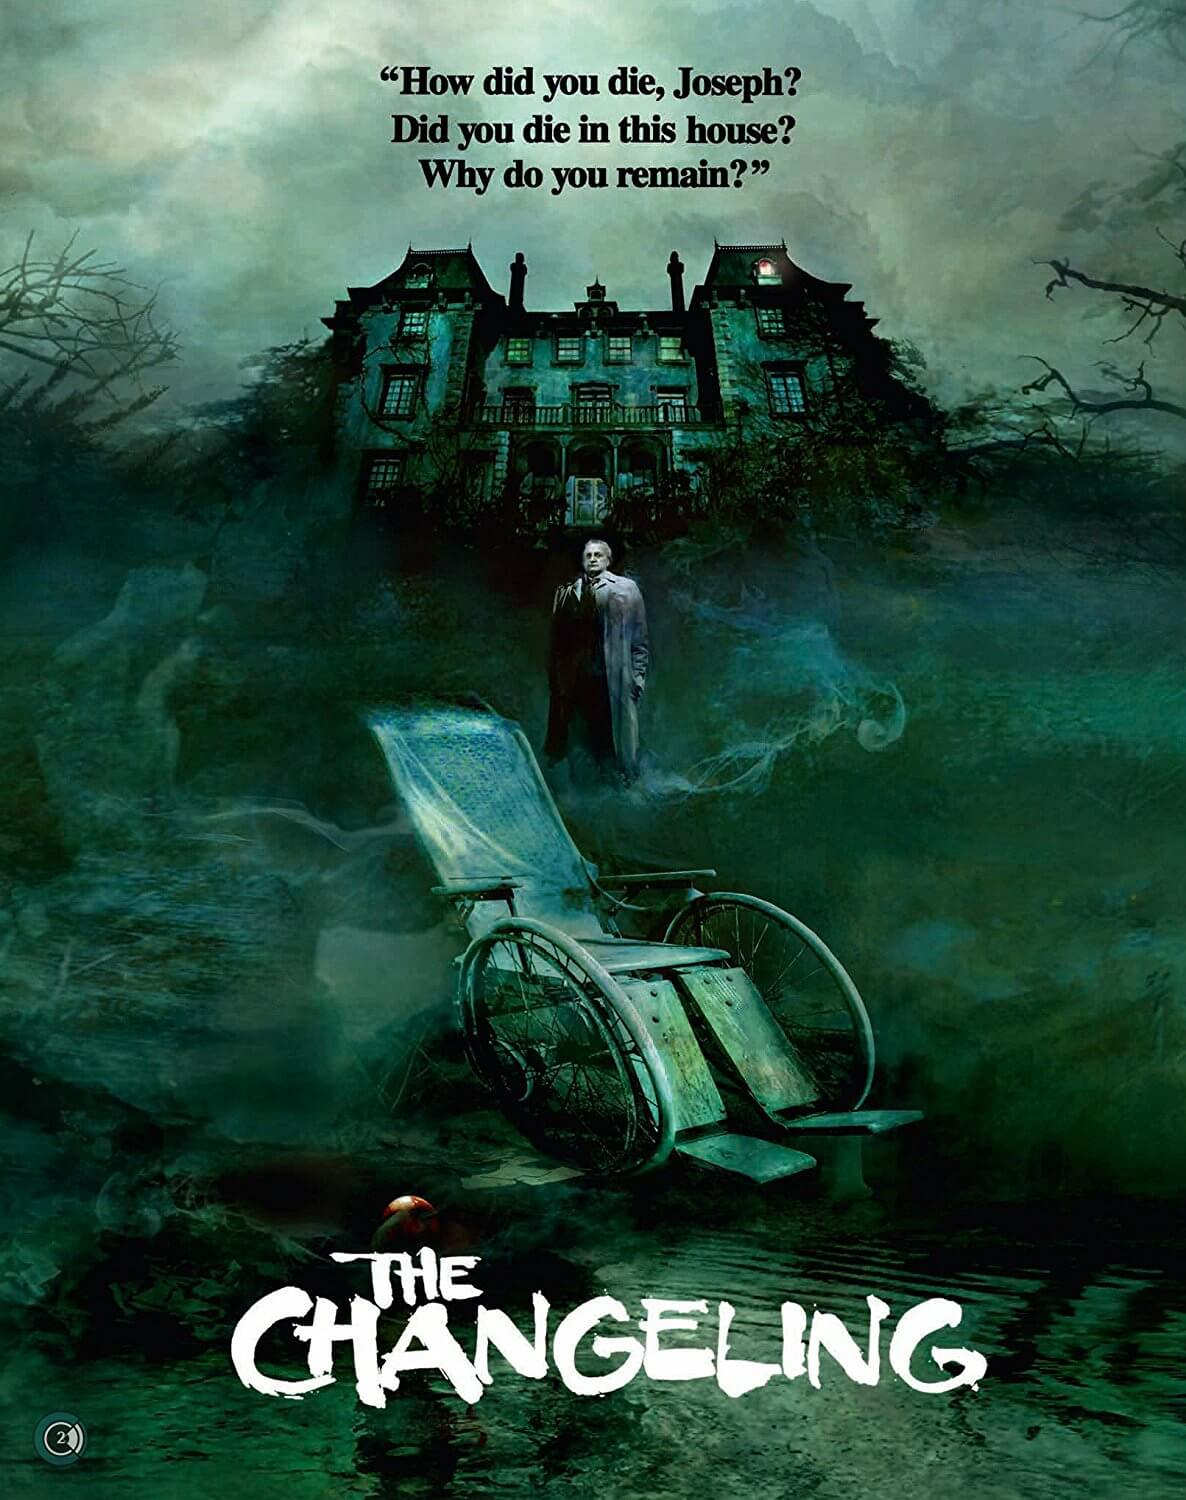 Changeling (2008) YIFY - Download Movie TORRENT - YTS |The Changeling 2008